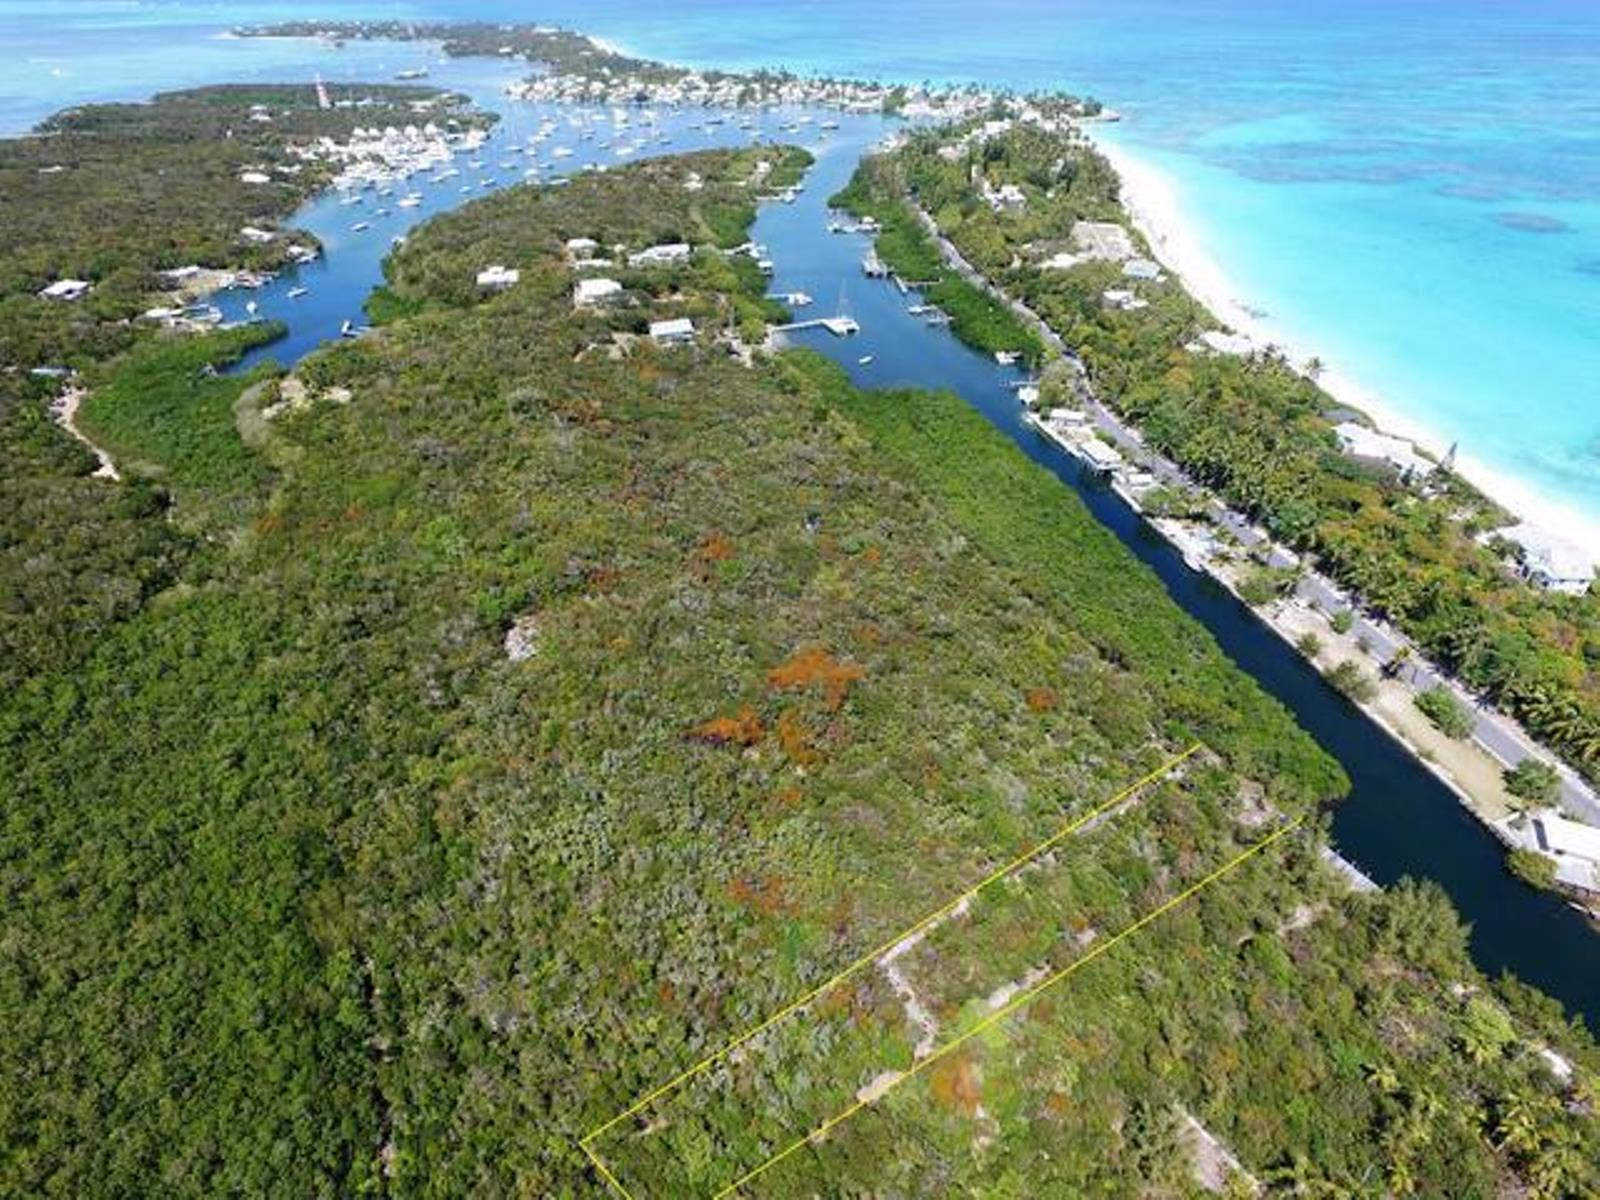 Land for Sale at Unique Opportunity in Hope Town offering great protection in harbour Elbow Cay Hope Town, Abaco, Bahamas